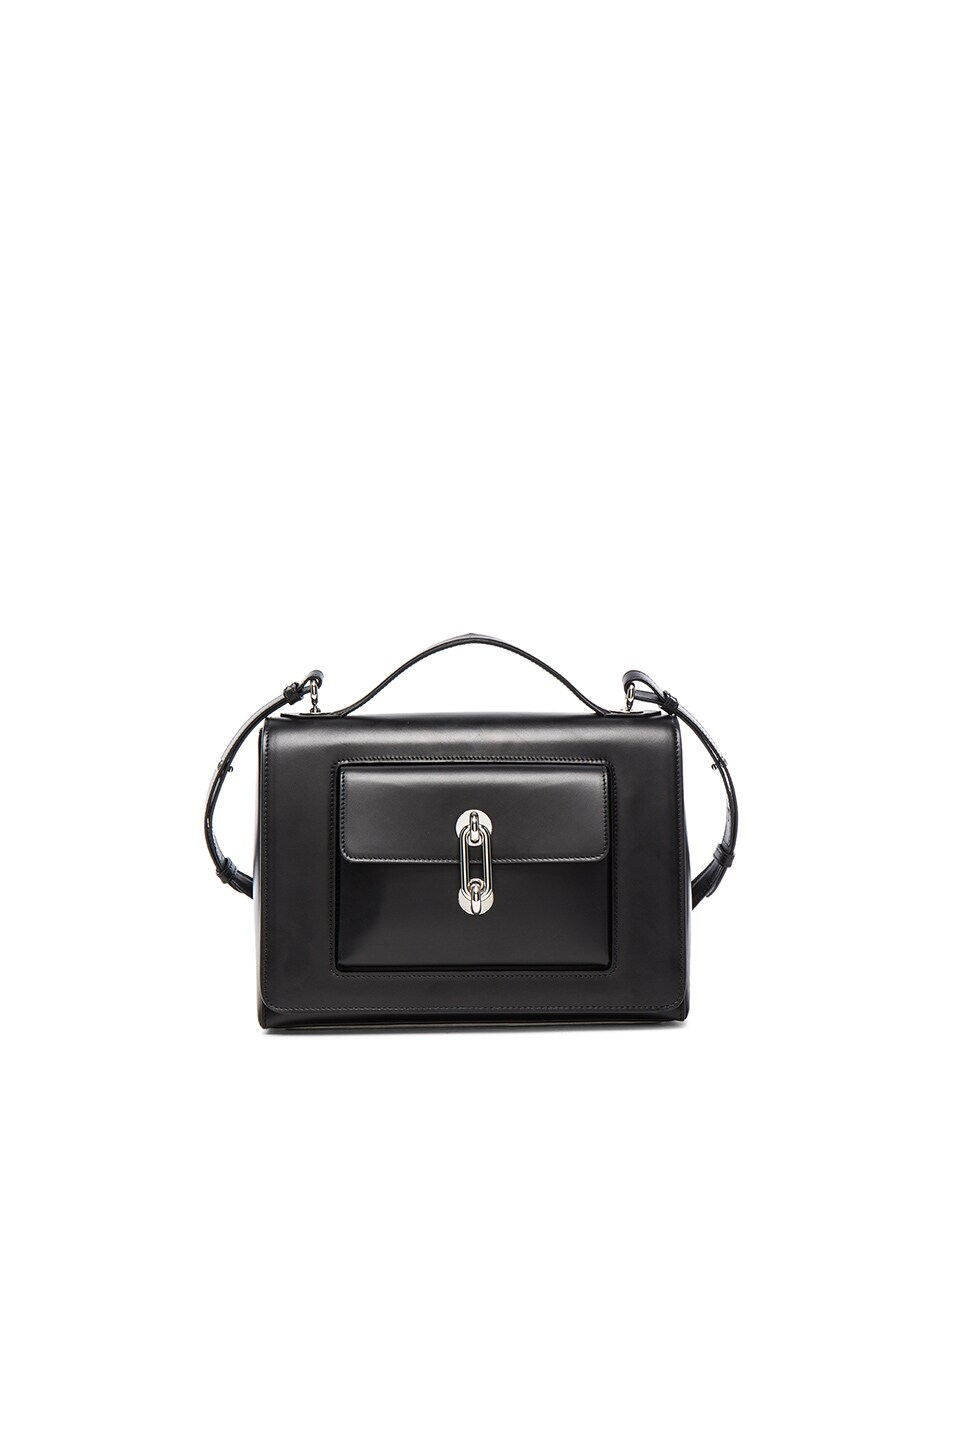 Image 1 of Balenciaga Maillon Flap Shoulder Bag in Black